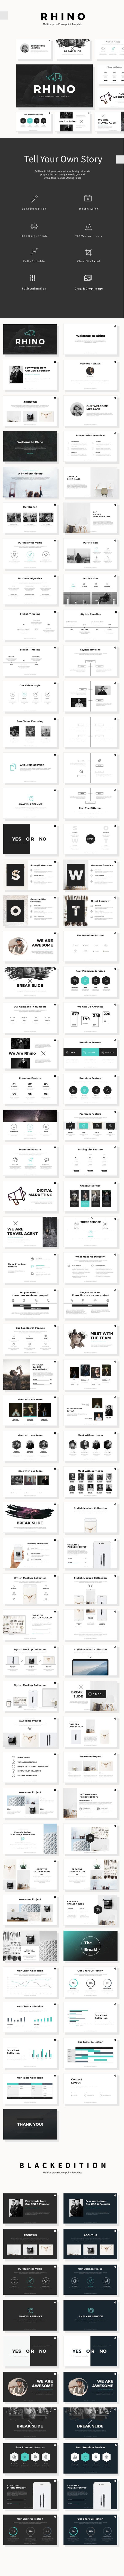 Rhino Minimal Theme - Pitch Deck #PowerPoint Templates Download here: https://graphicriver.net/item/rhino-minimal-theme/19467296?ref=alena994